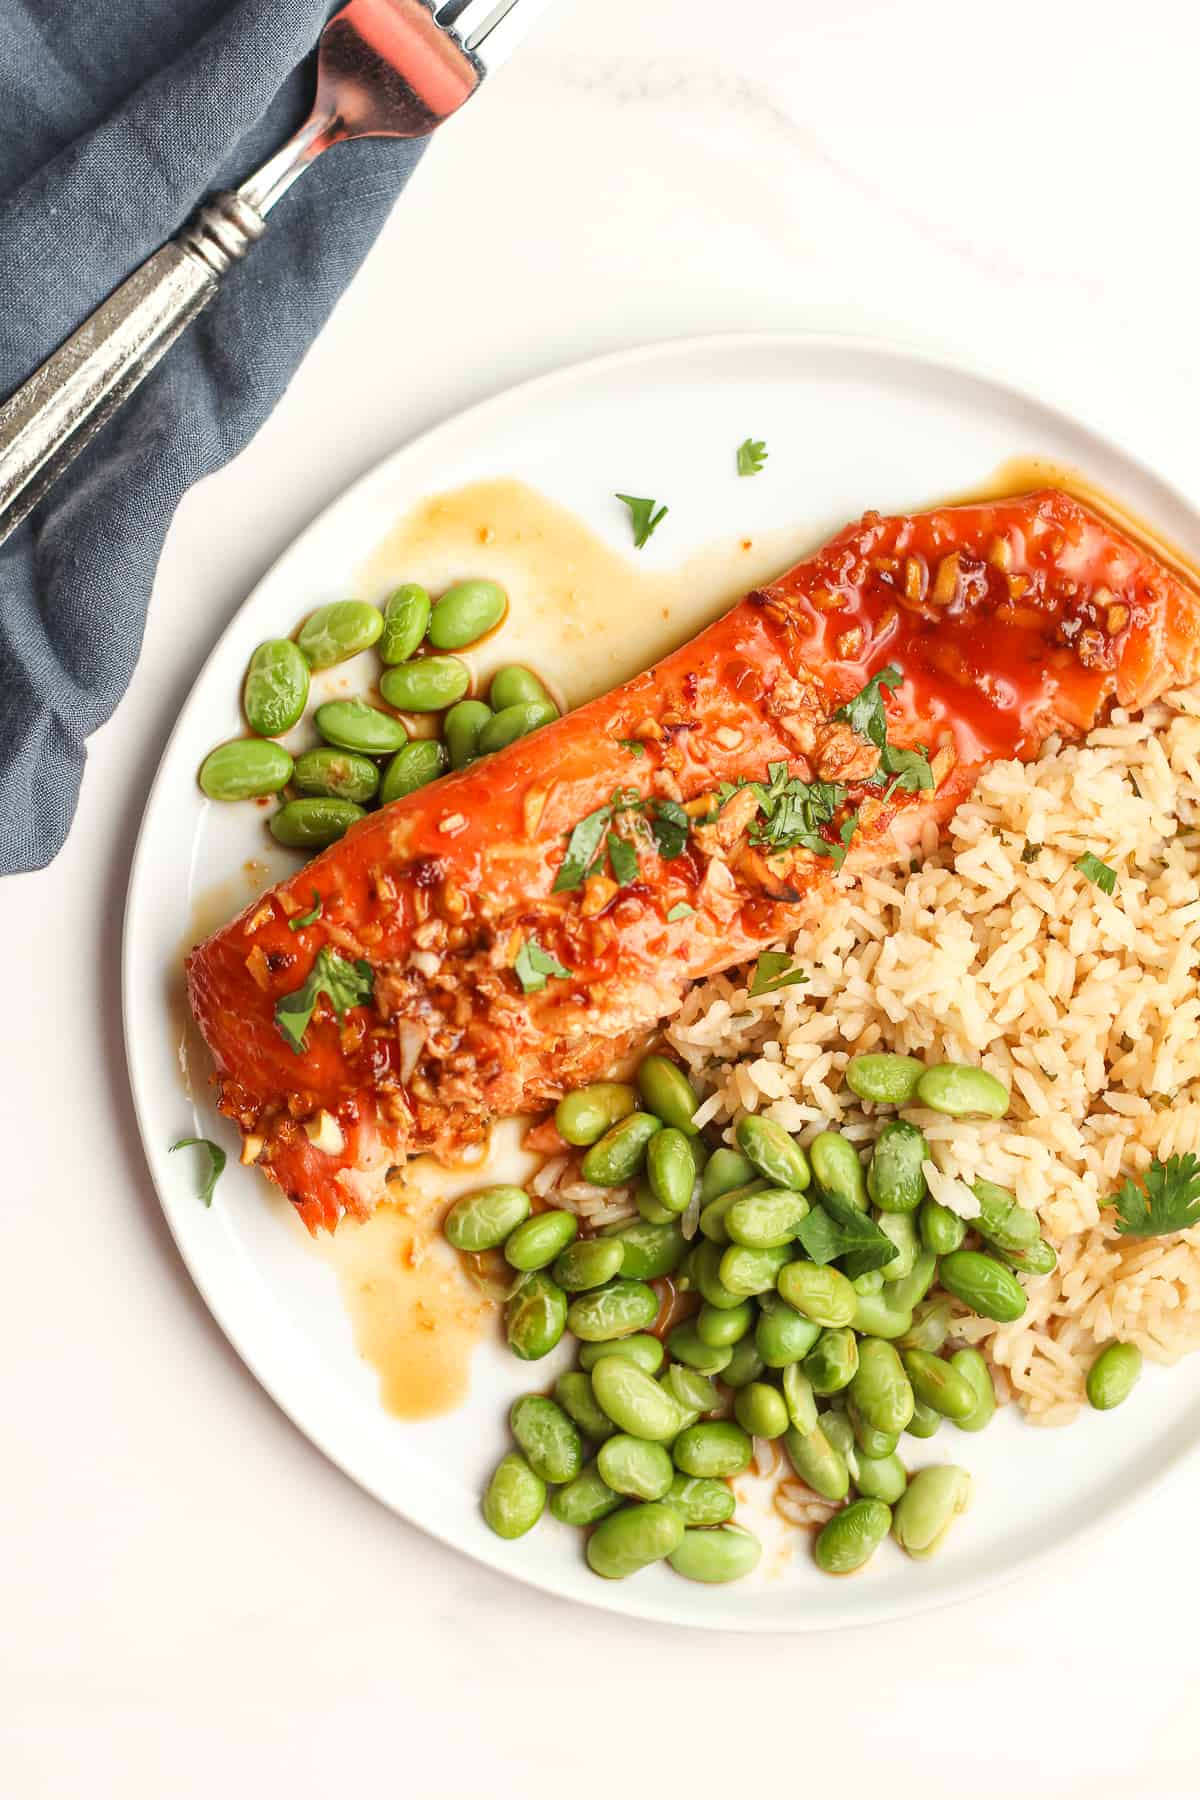 A plate of of salmon, rice and edamame.